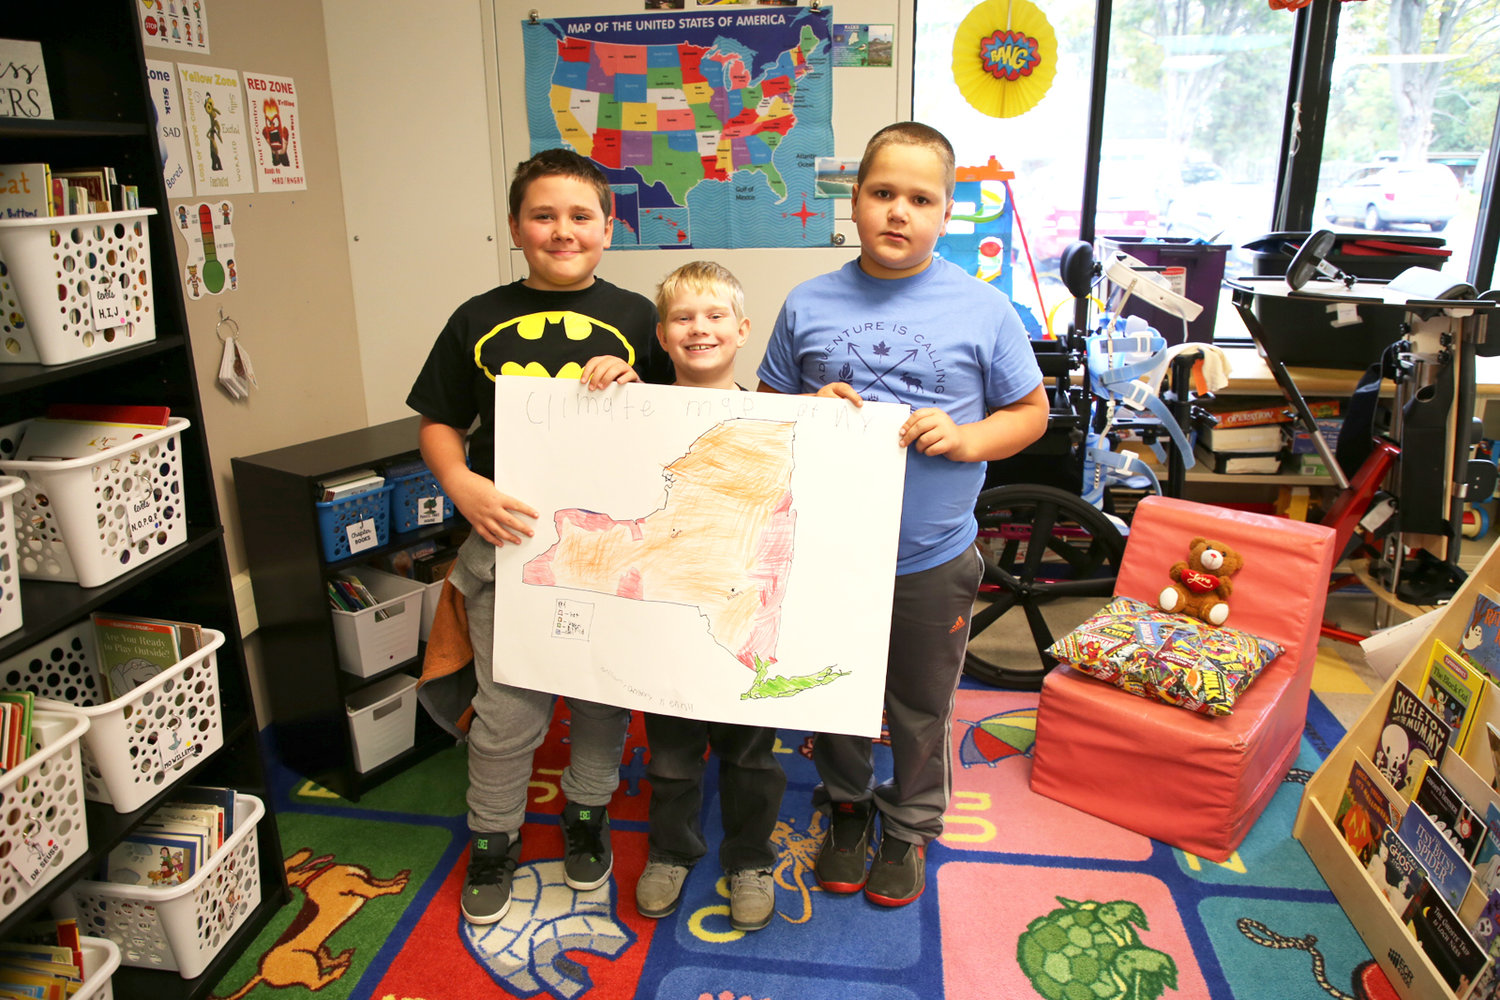 John E. Joy 4th grade students from Mrs. Darcangelo's class are pictured from left to right:  Christian Plunkett, William Aldrich Jr. and Kenny Gilmore